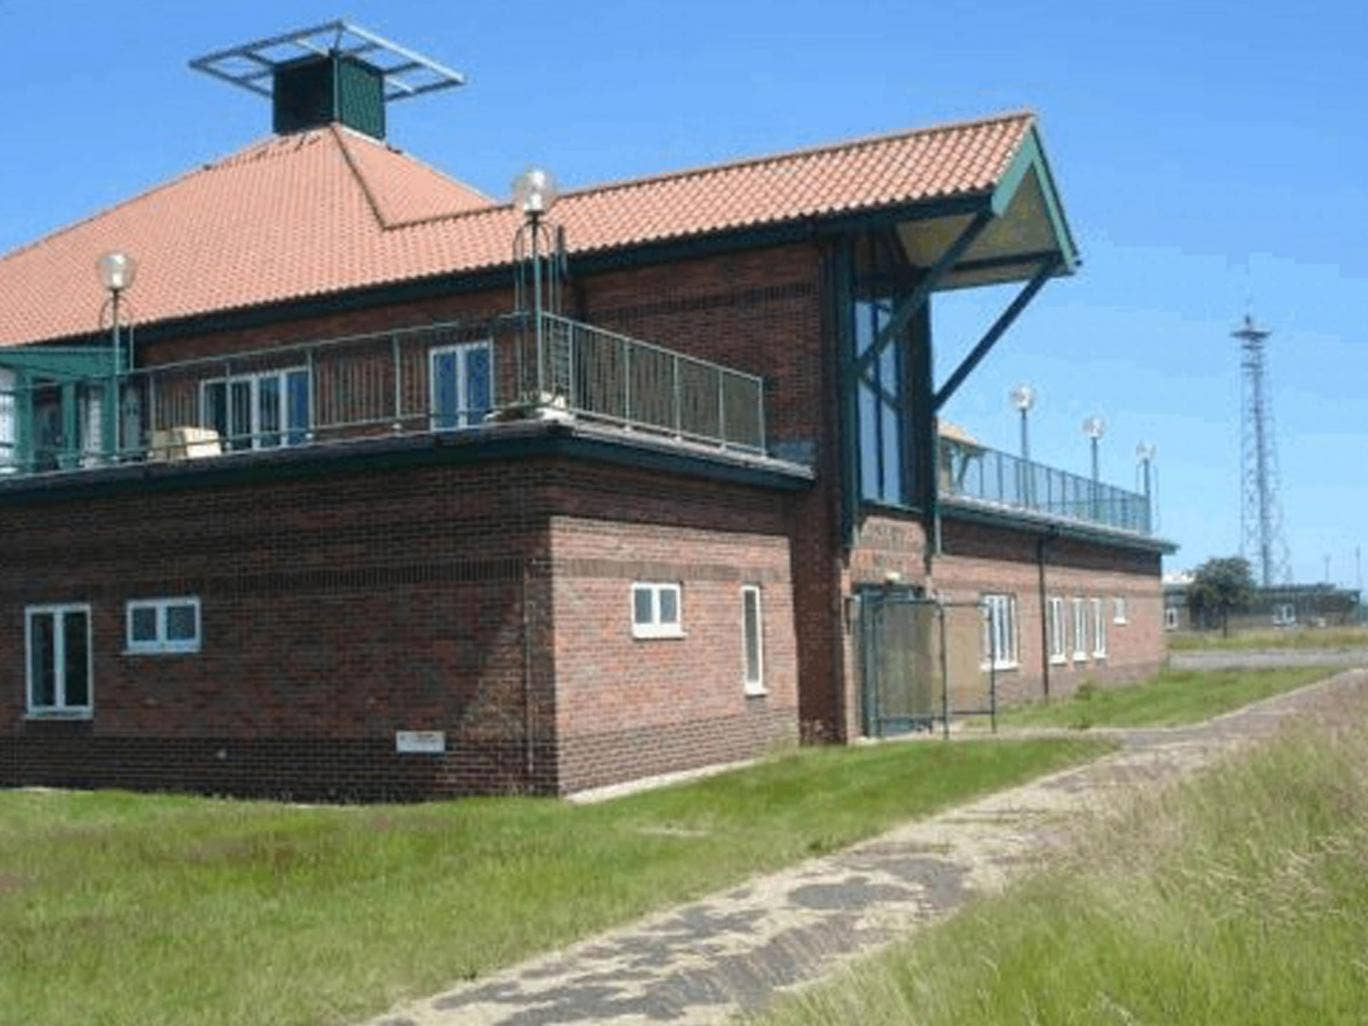 The former RAF Neatishead radar base in Norfolk